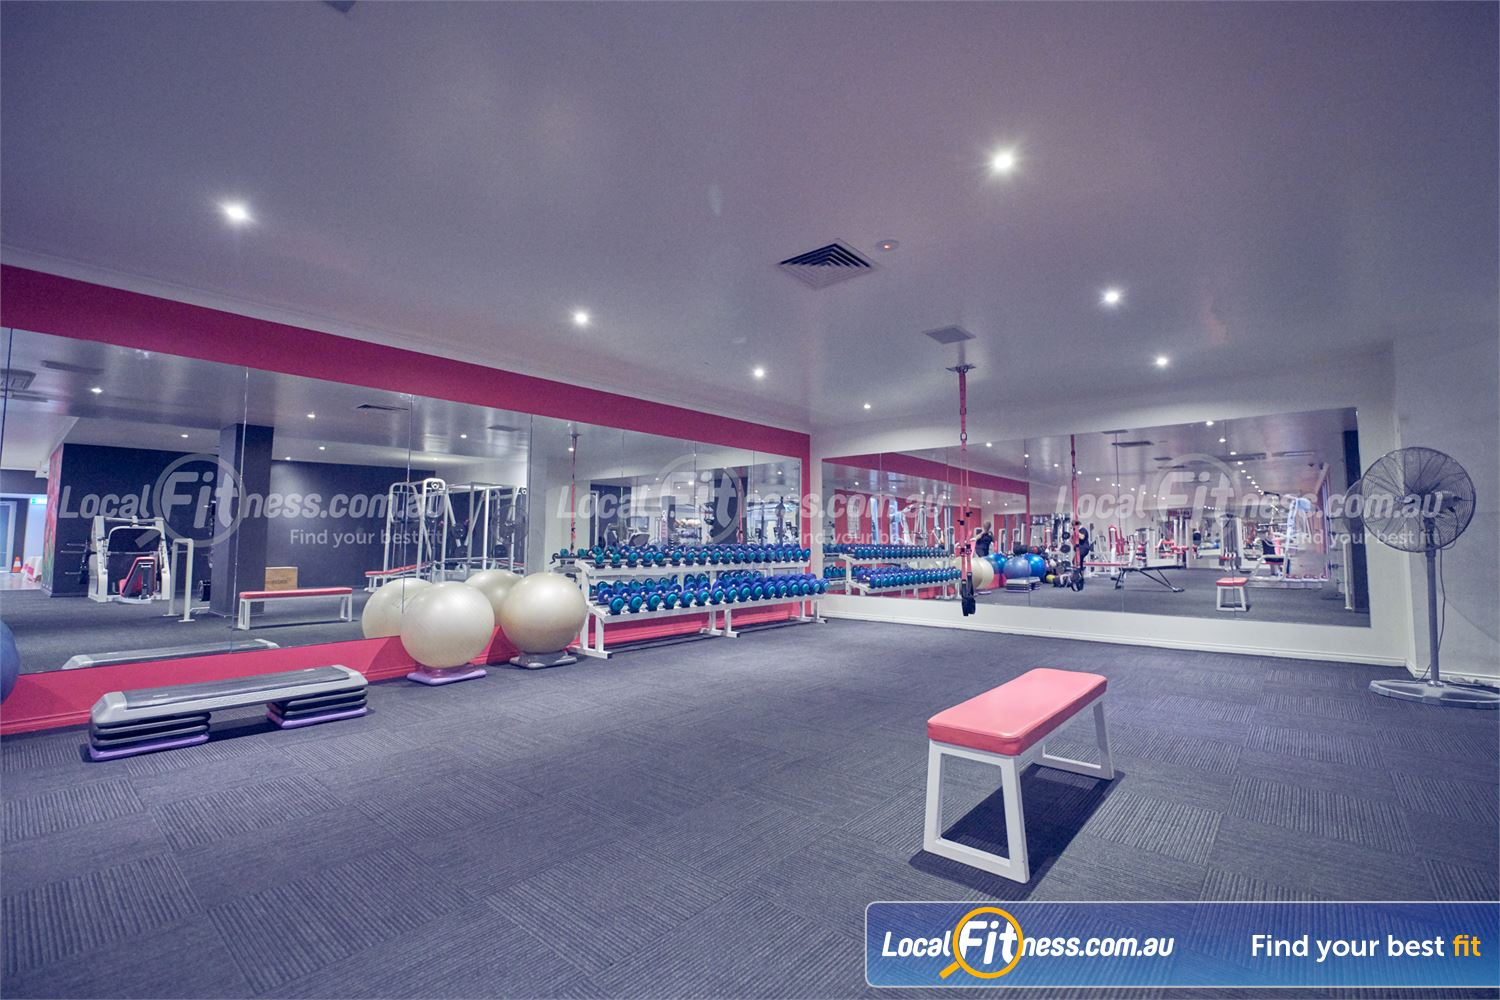 Fernwood Fitness Near Doncaster Our free-weights area is fully equipped with dumbbells, barbells and more.